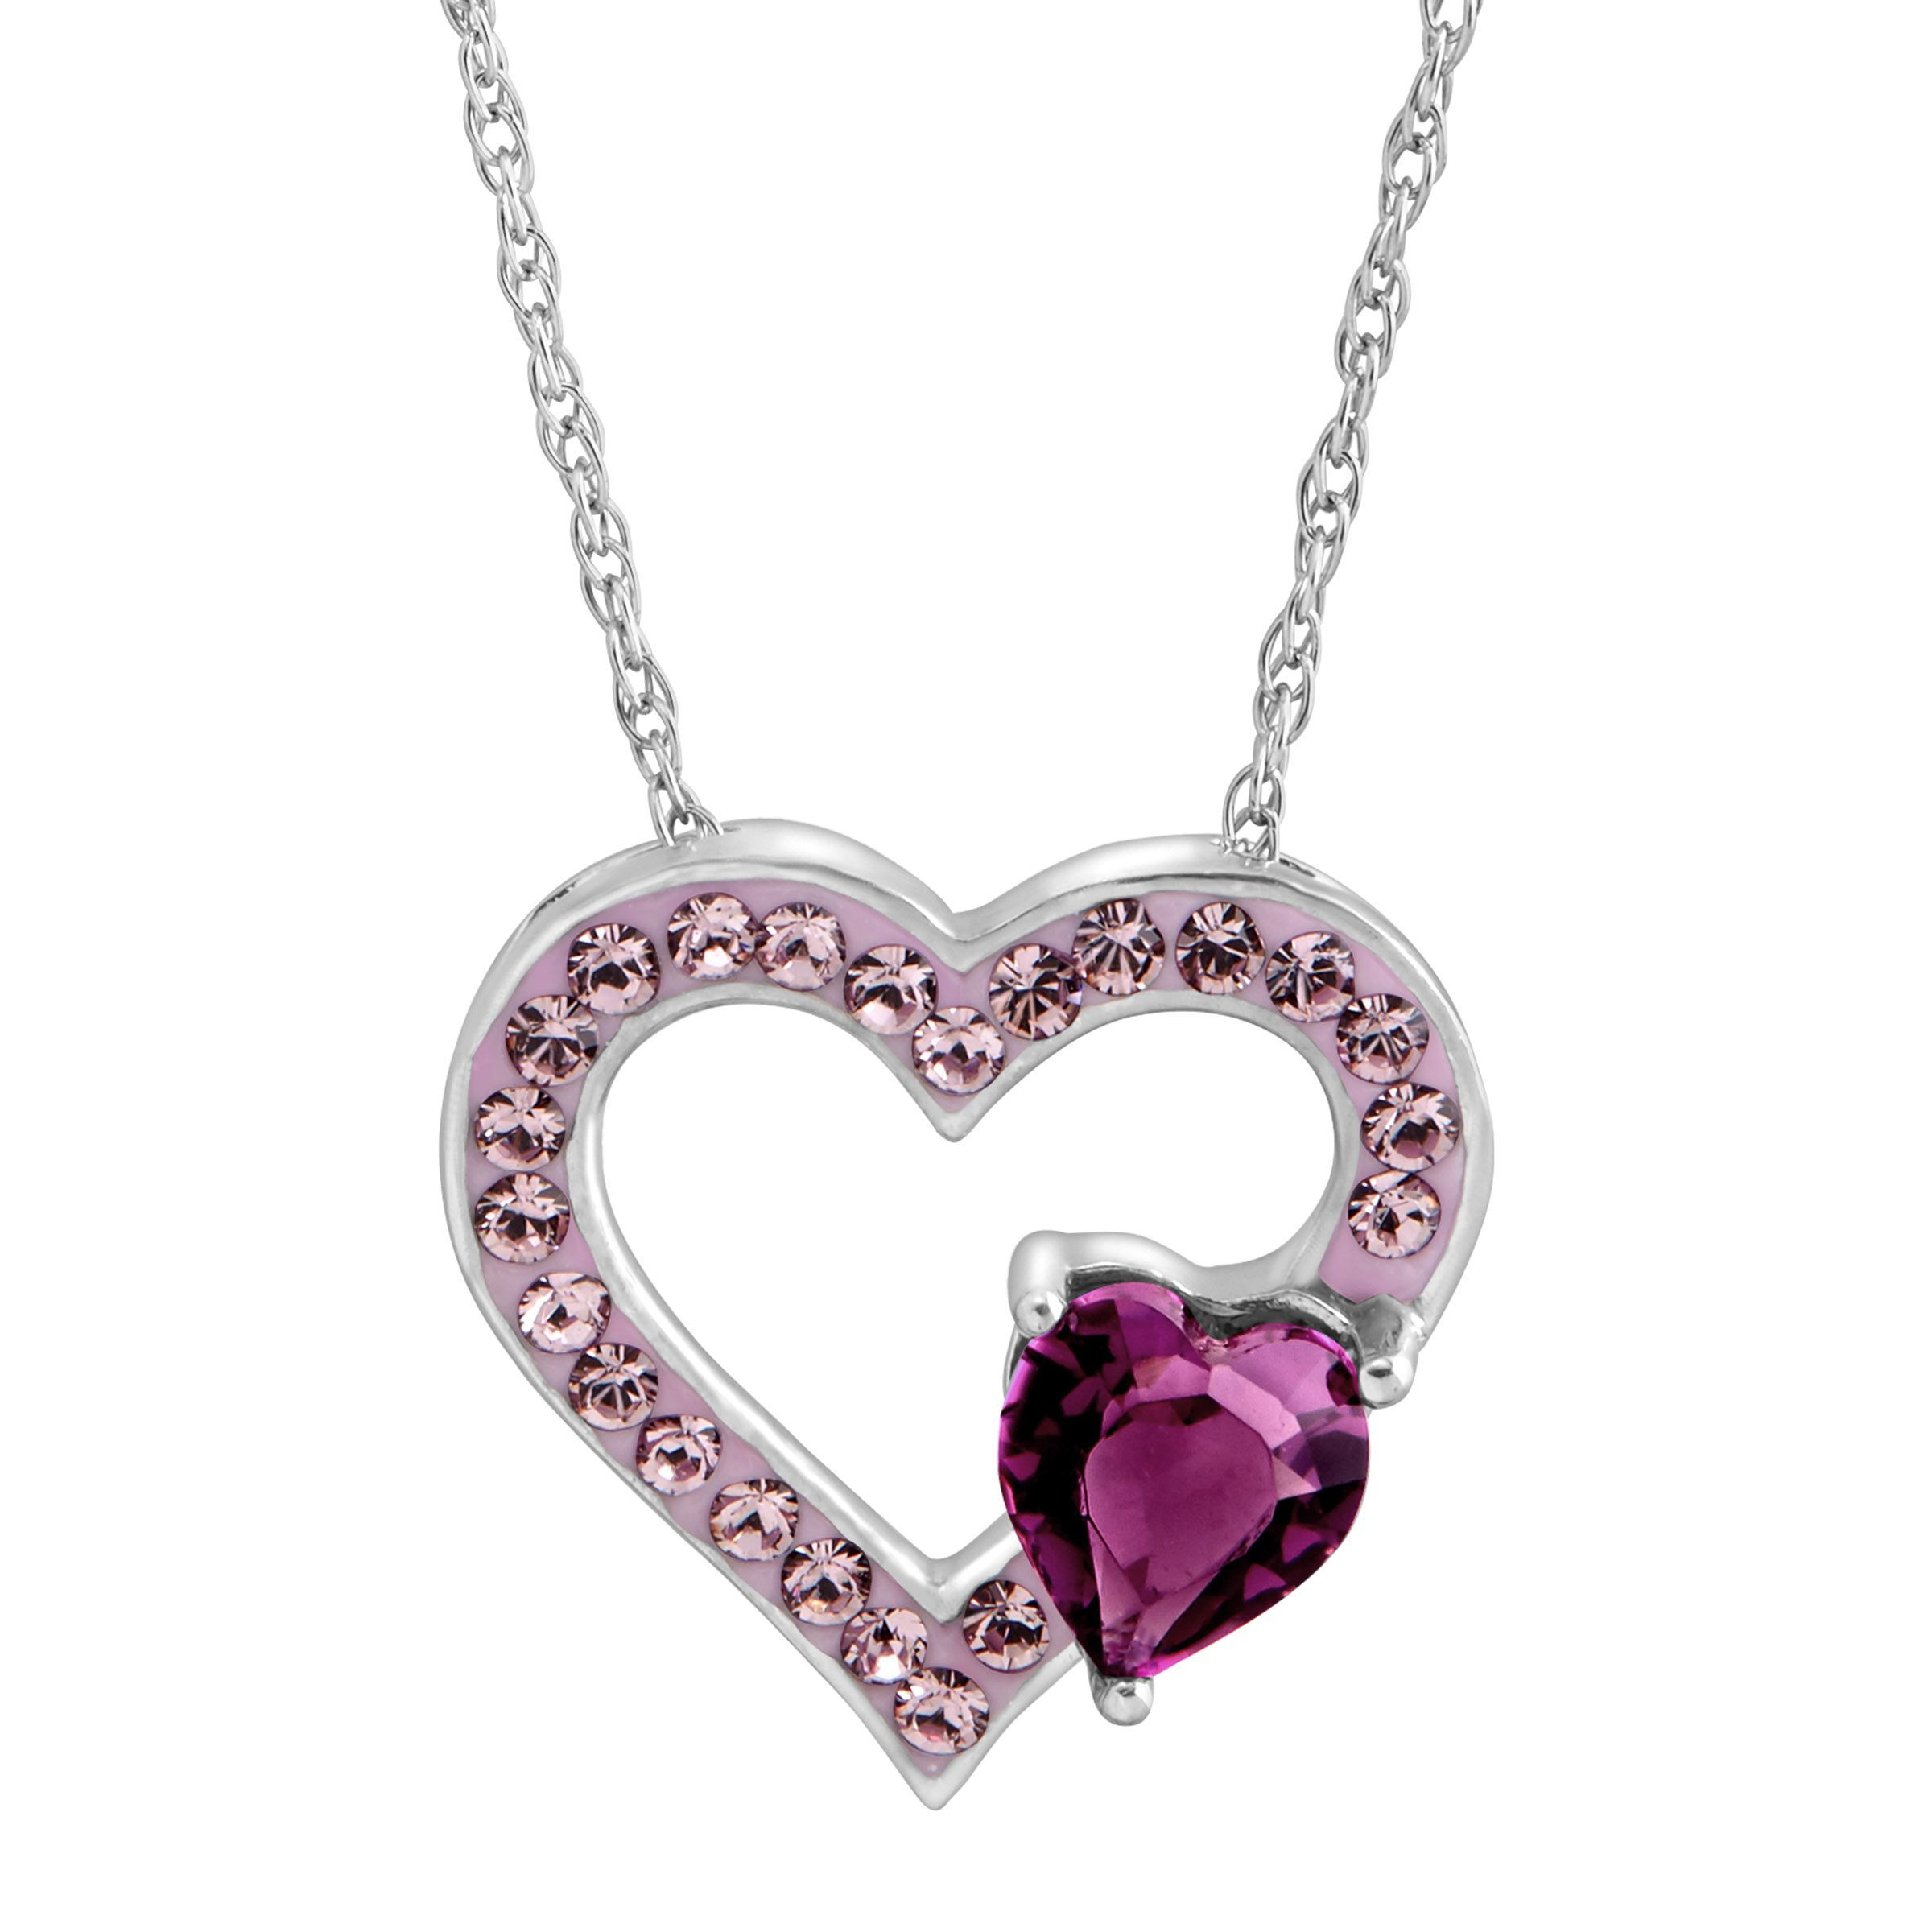 purple druzi perfumes necklace on magenta charm products jewelry heart dark silver match pendant sterling chain opal